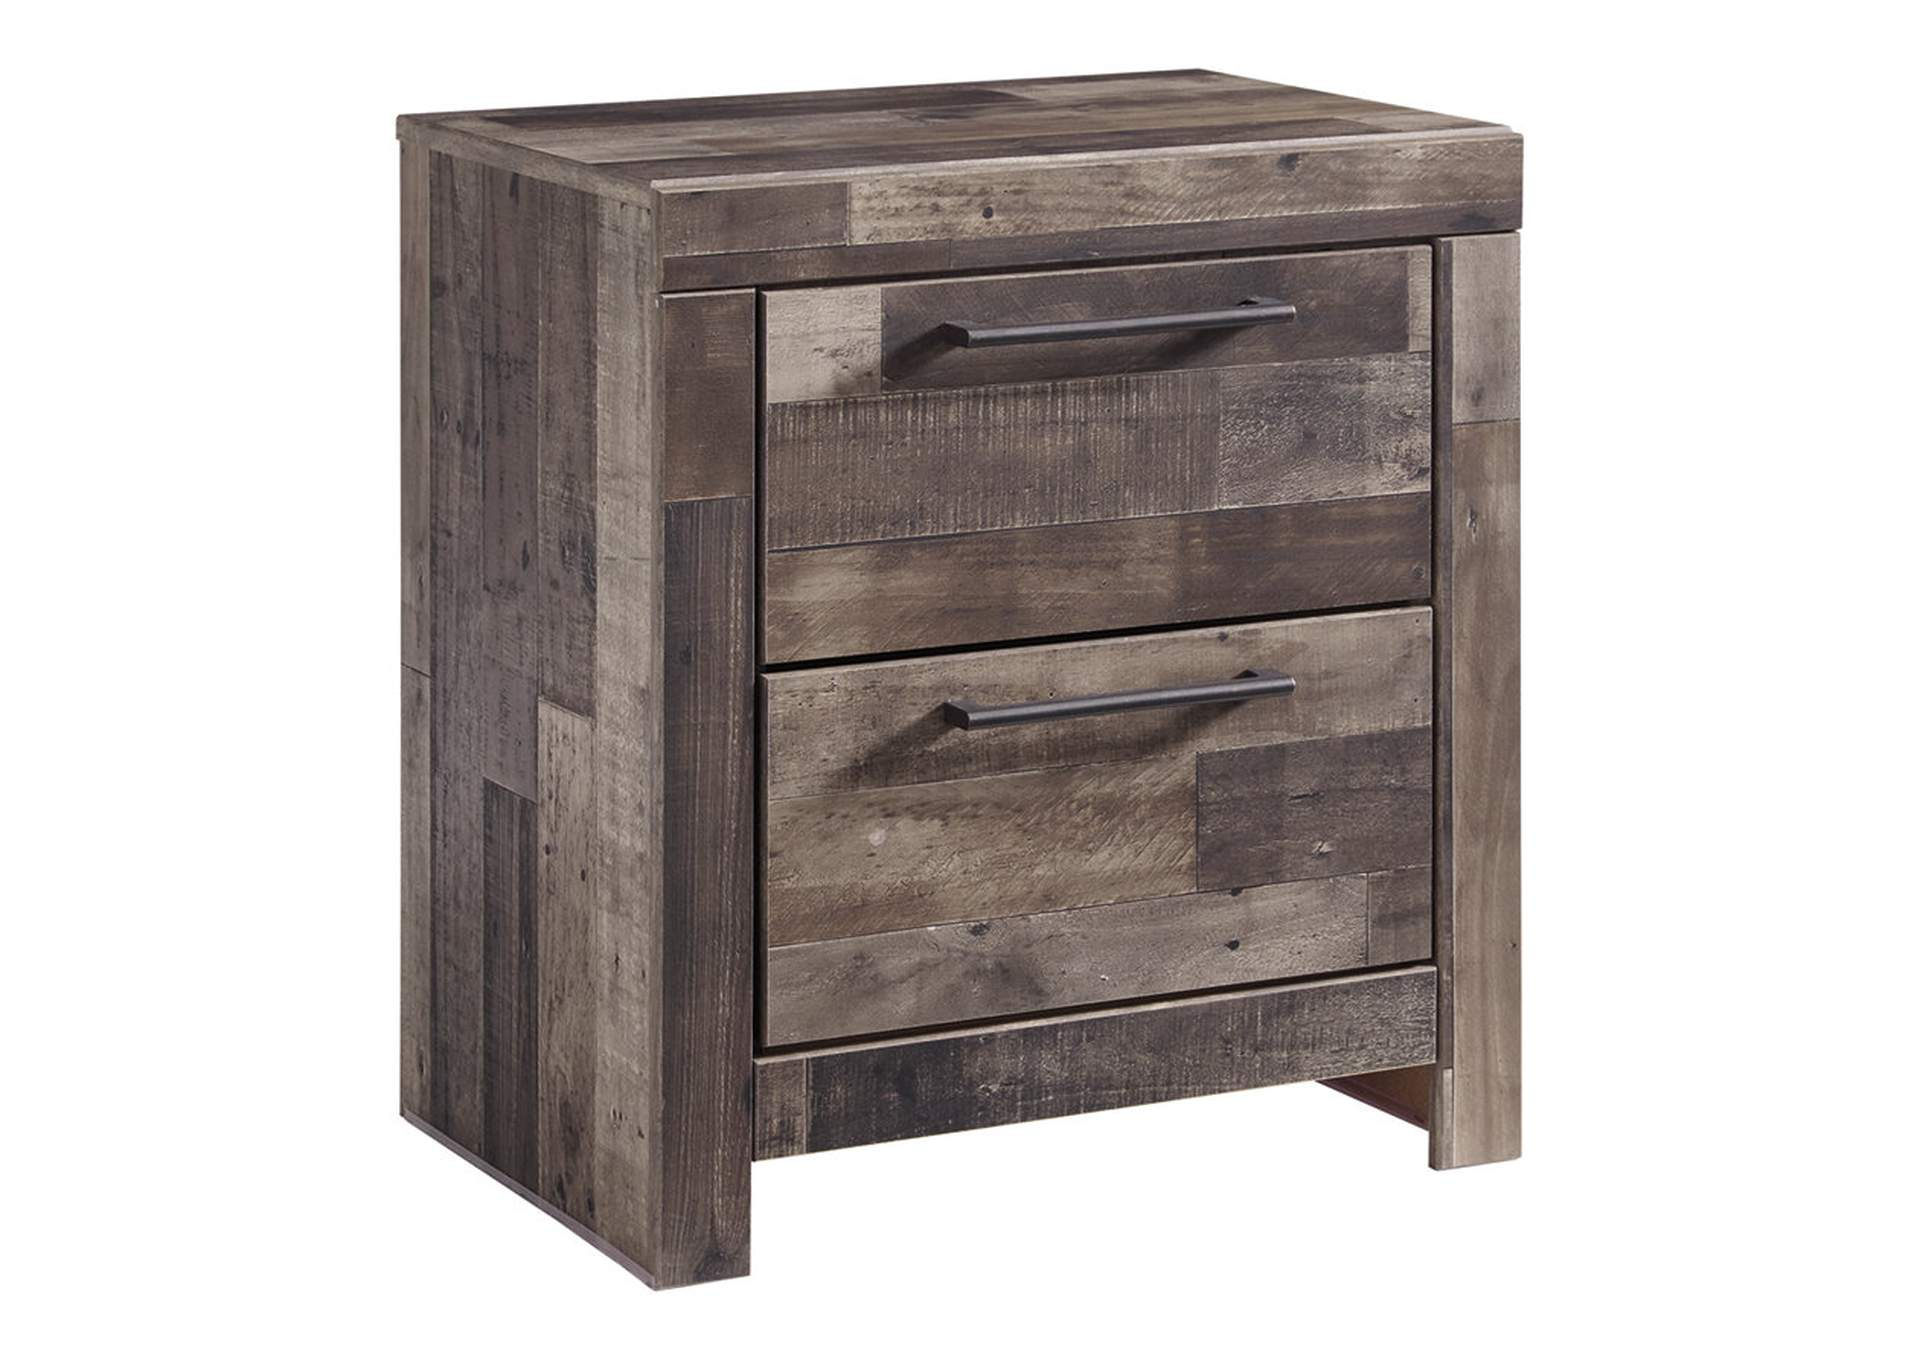 Derekson Two Drawer Nightstand,Benchcraft